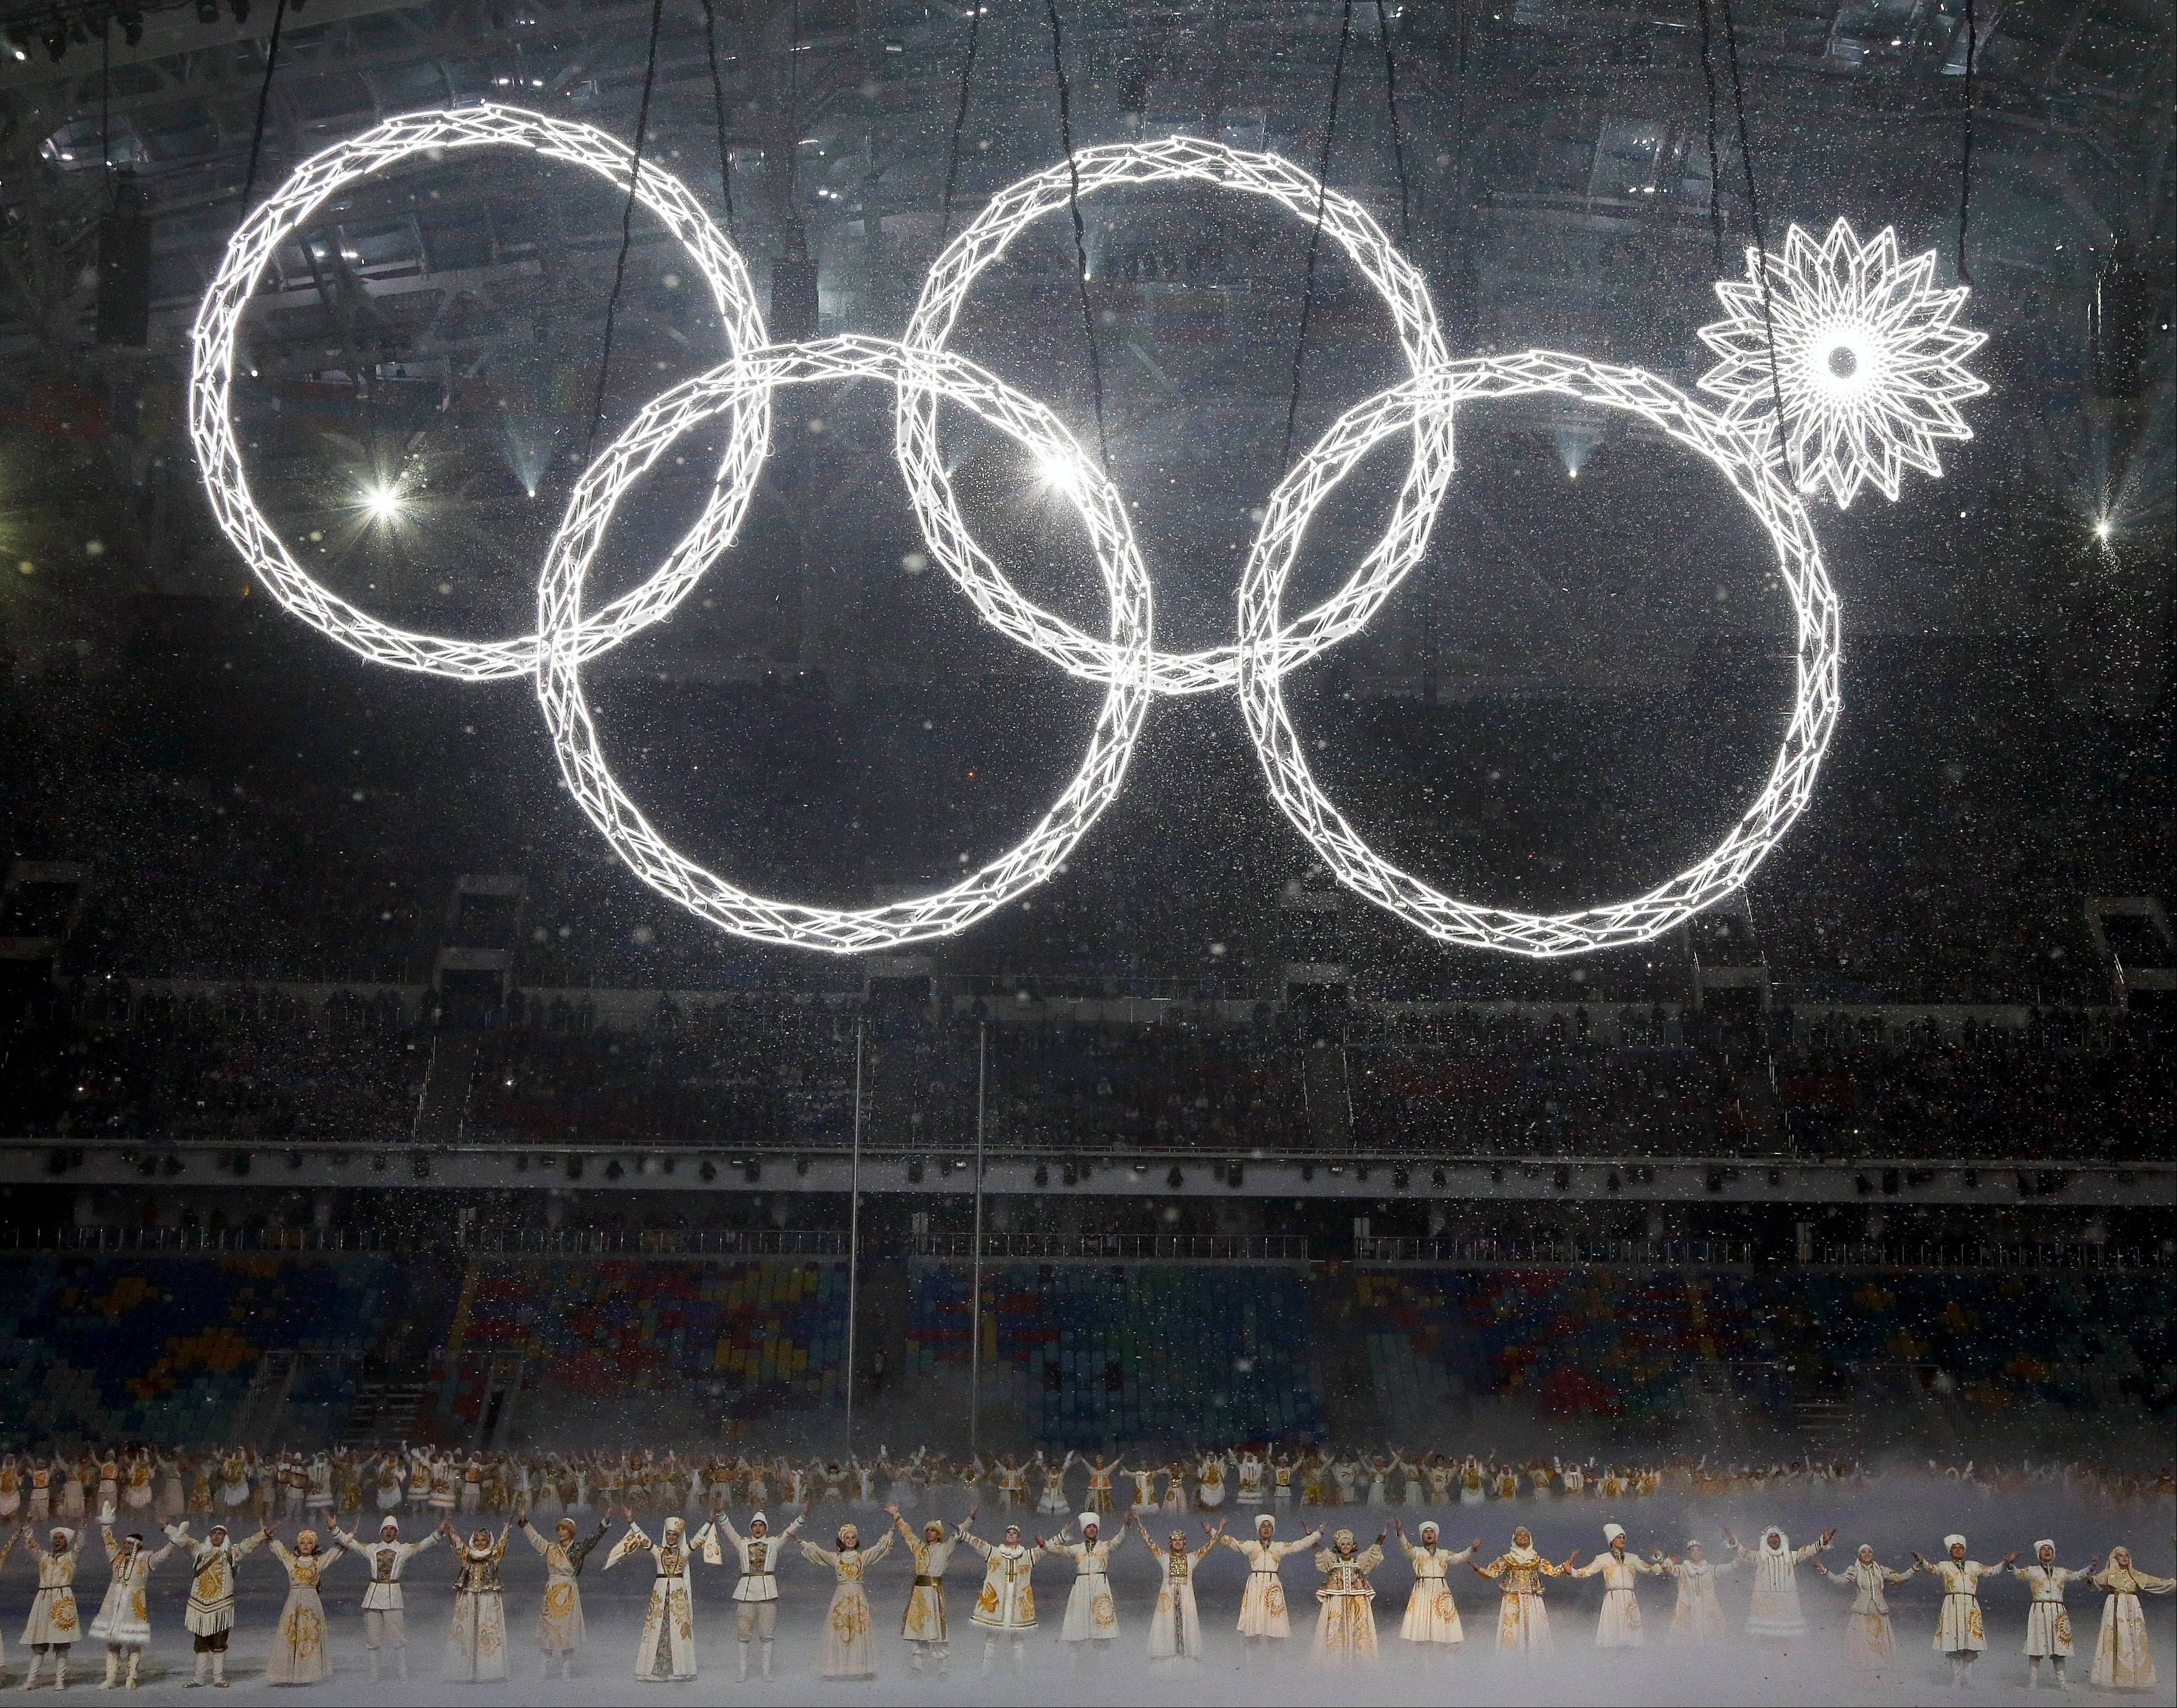 One of the rings forming the Olympic Rings symbol fails to open Friday during the opening ceremony of the 2014 Winter Olympics in Sochi, Russia.